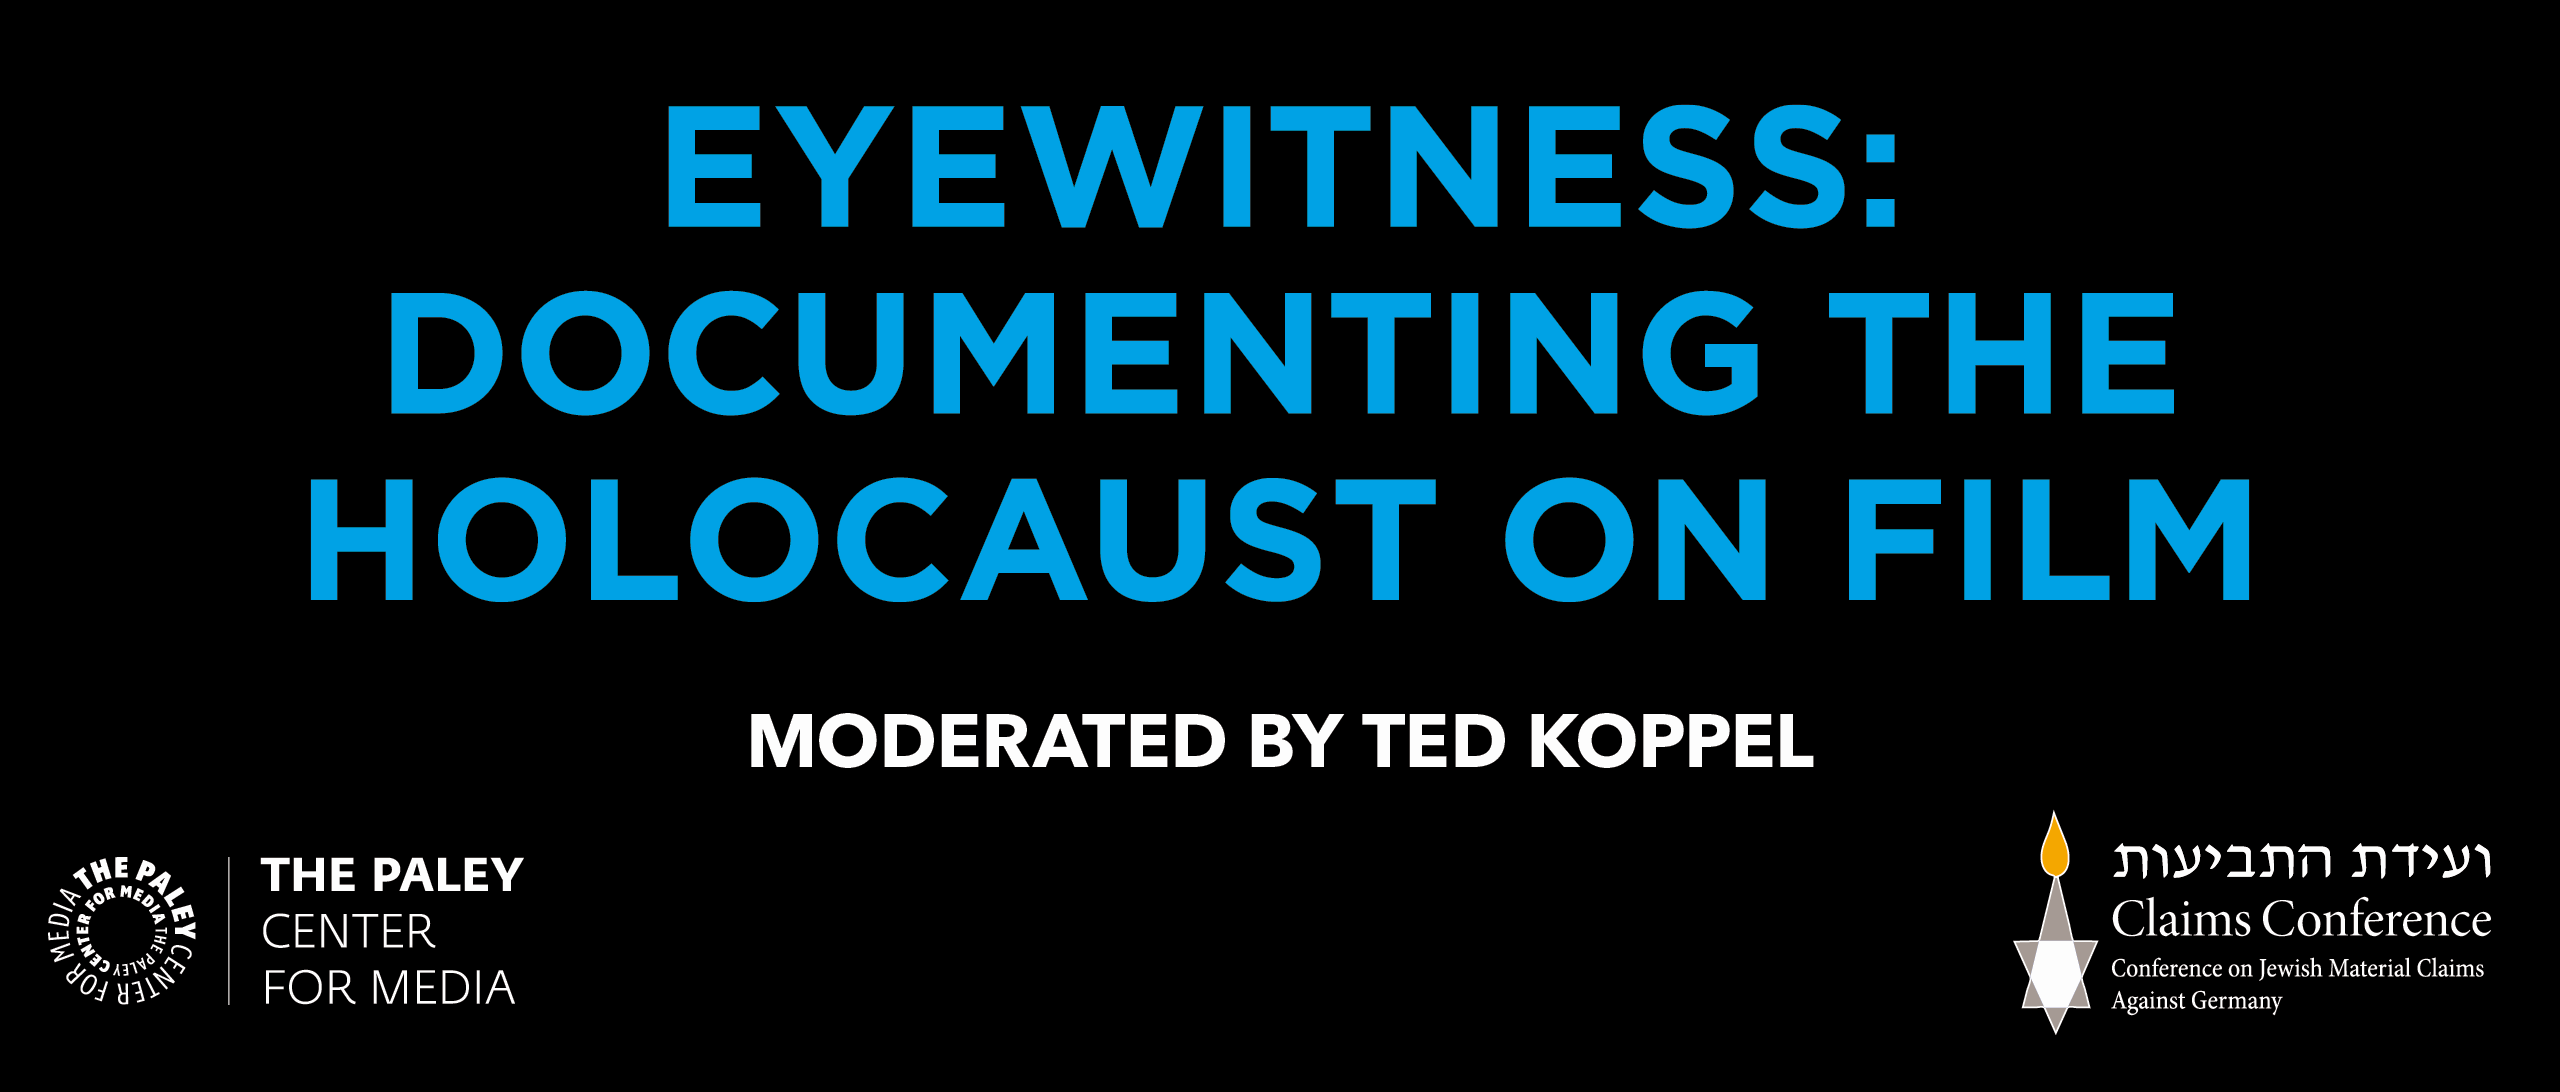 Eyewitness: Documenting the Holocaust on Film